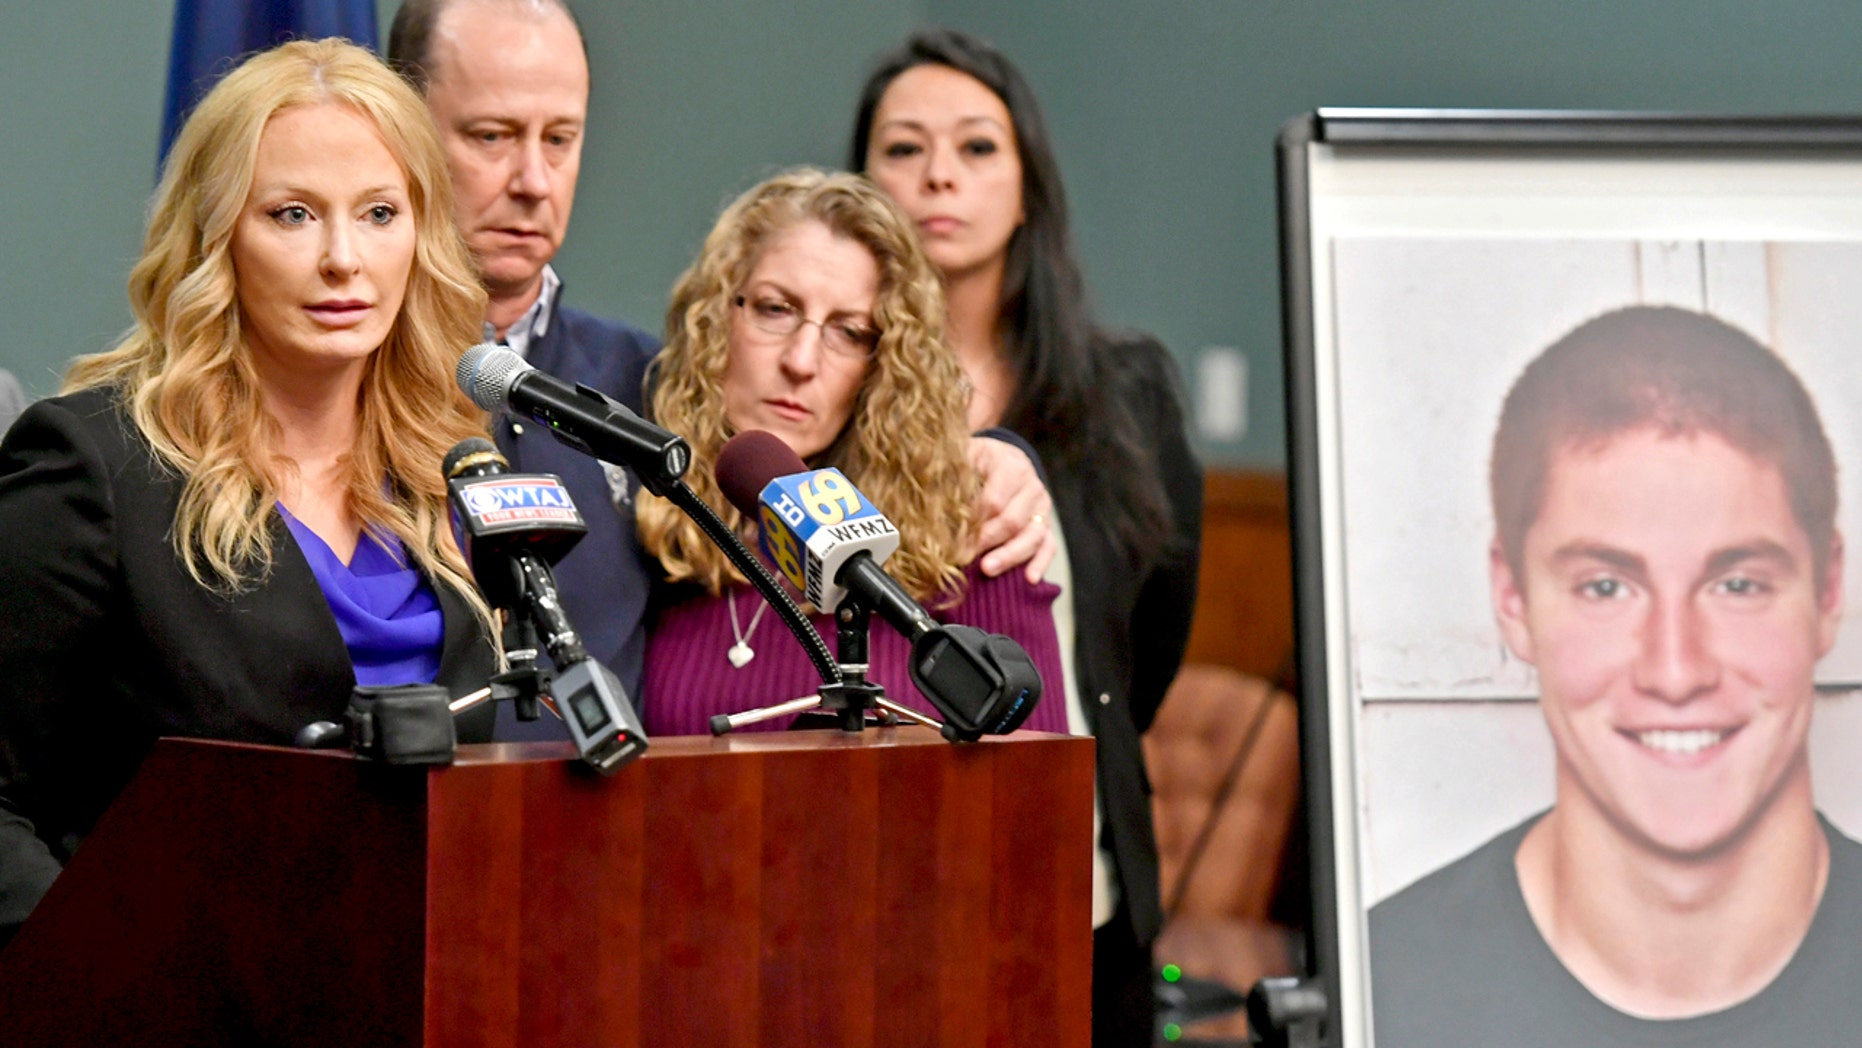 In this May 5, 2017, file photo, Centre County, Pa., District Attorney Stacy Parks Miller, left, announces findings an investigation into the death of Penn State University fraternity pledge Tim Piazza, seen in photo at right, as his parents, Jim and Evelyn Piazza, second and third from left, stand nearby during a news conference in Bellefonte, Pa.